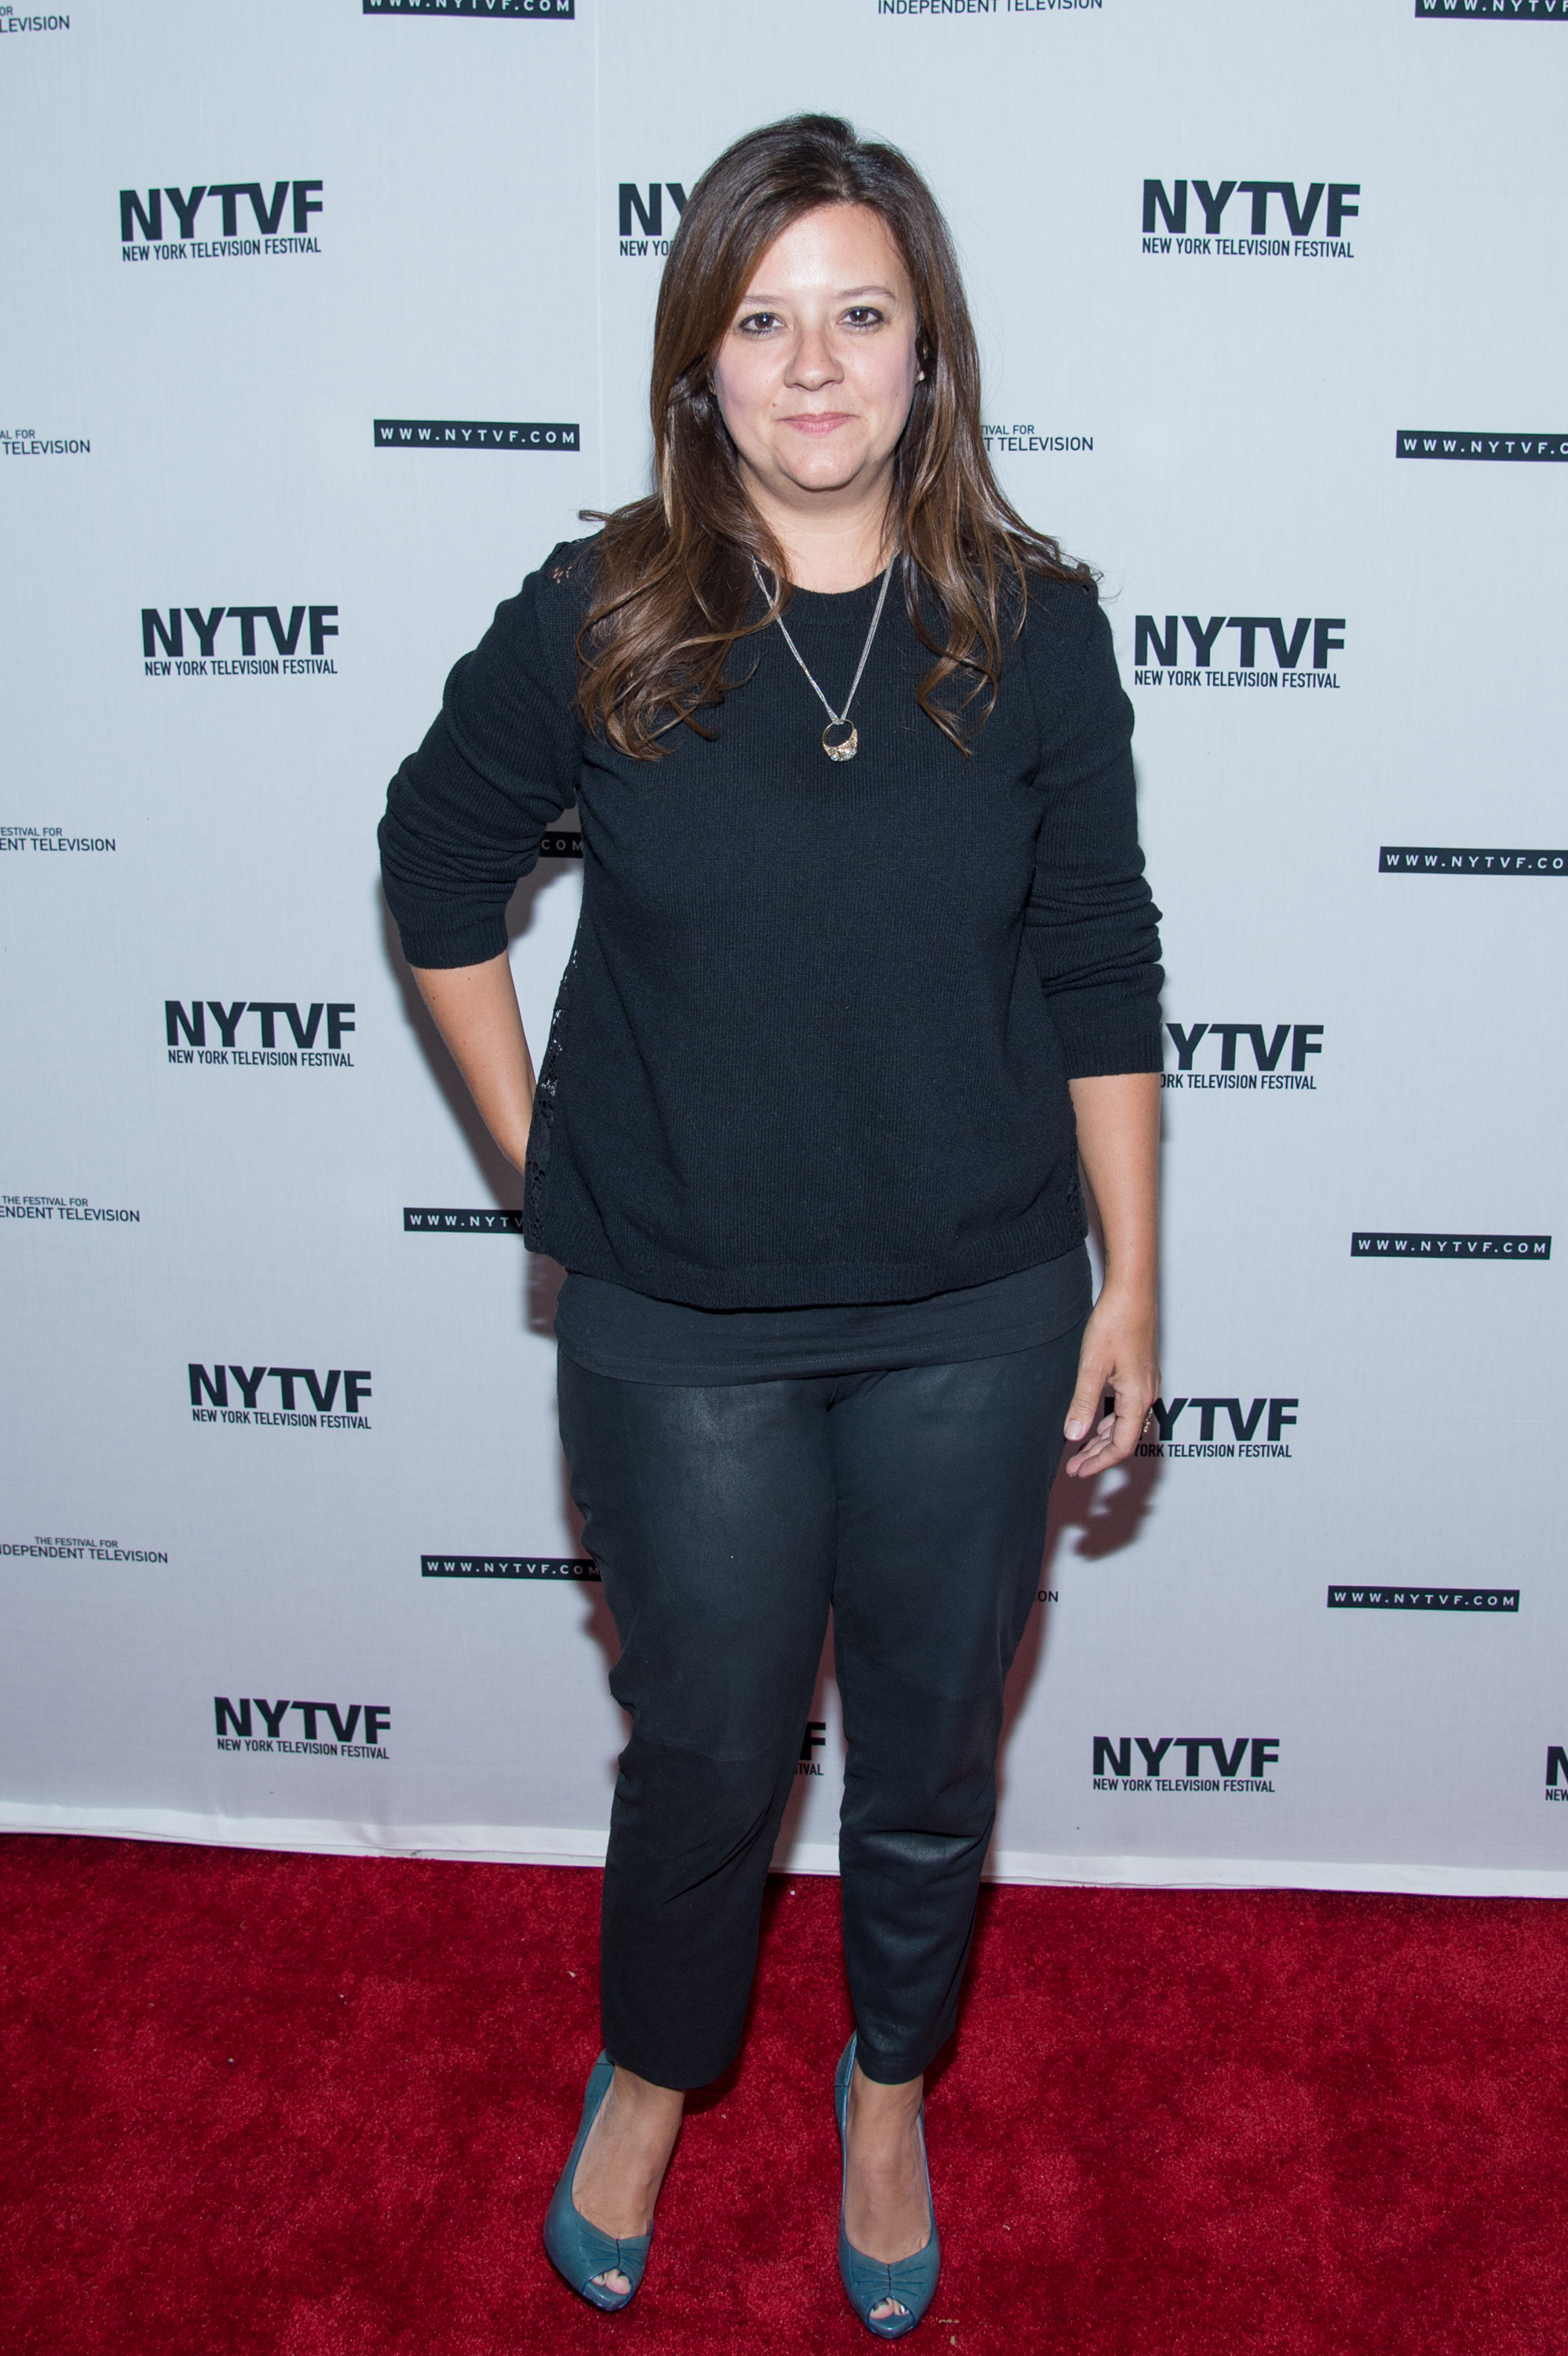 Producer Stephanie Laing  on Oct. 23, 2014 in New York City.